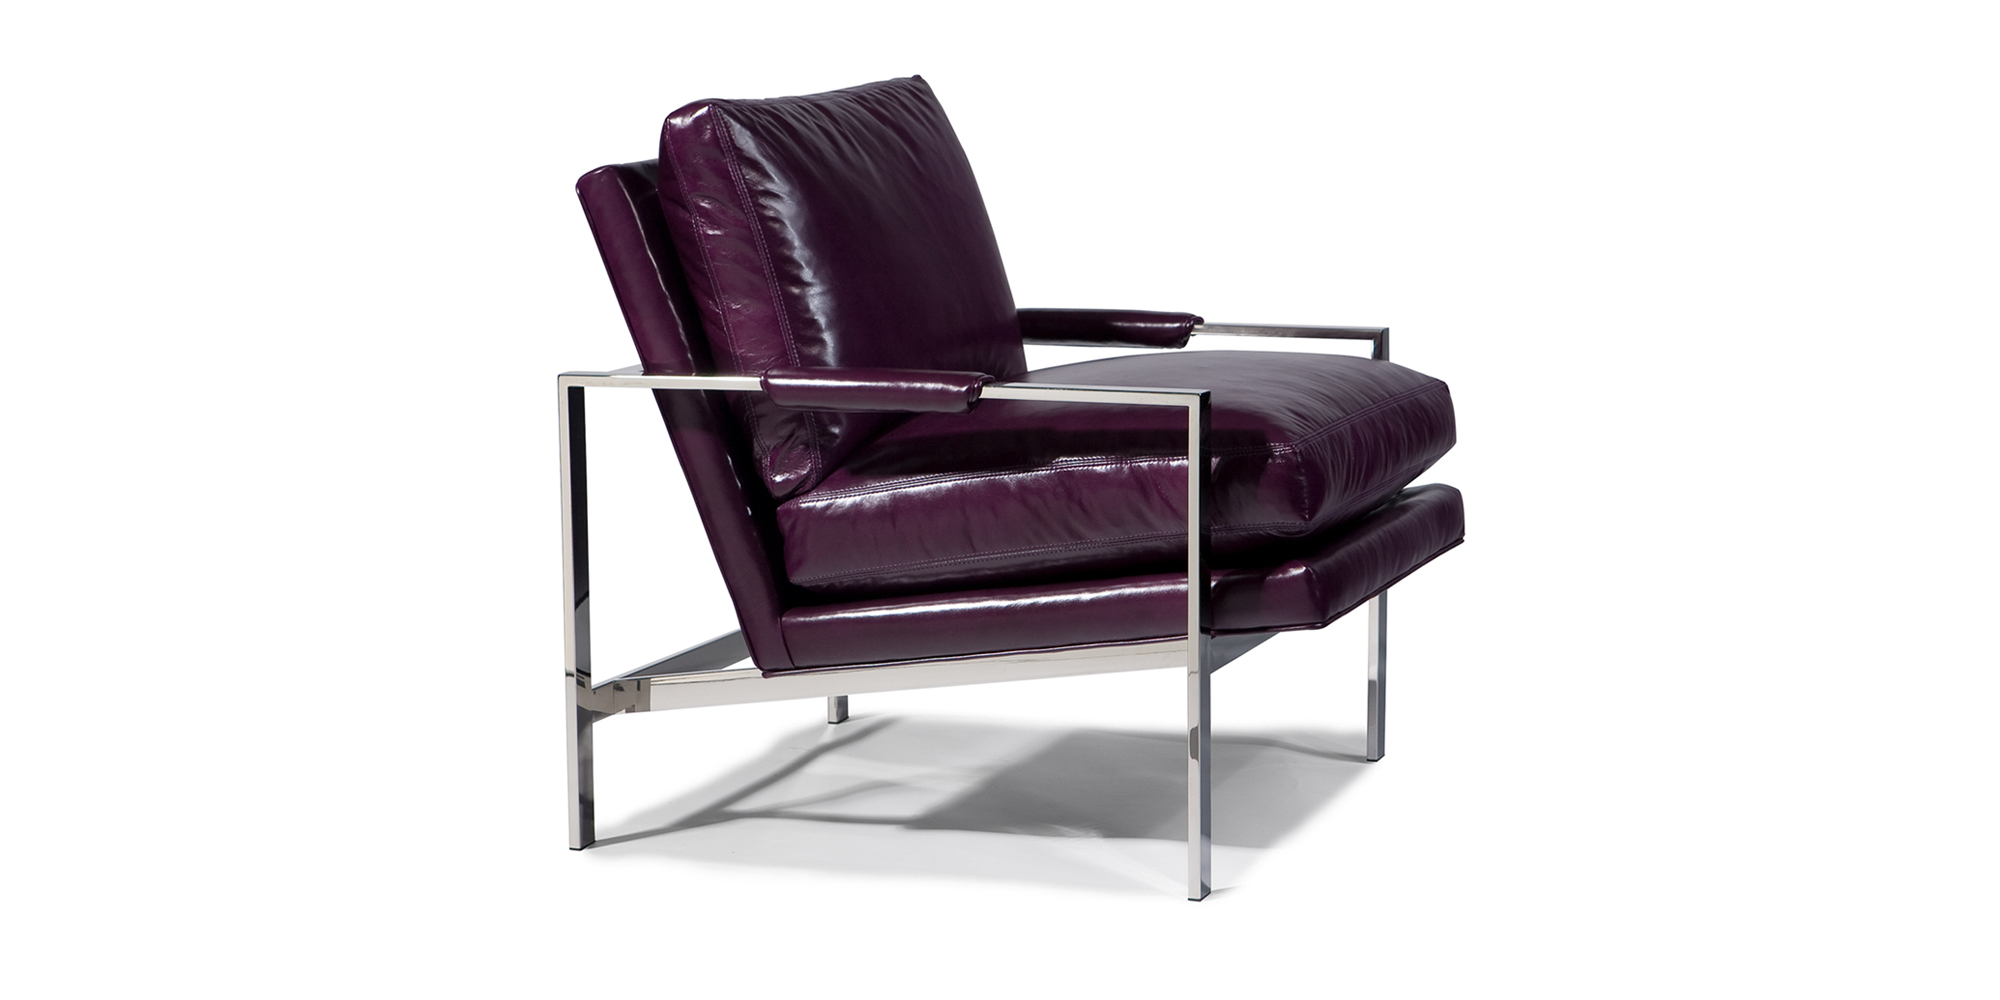 951 Design Classic Chair (Polished Stainless)